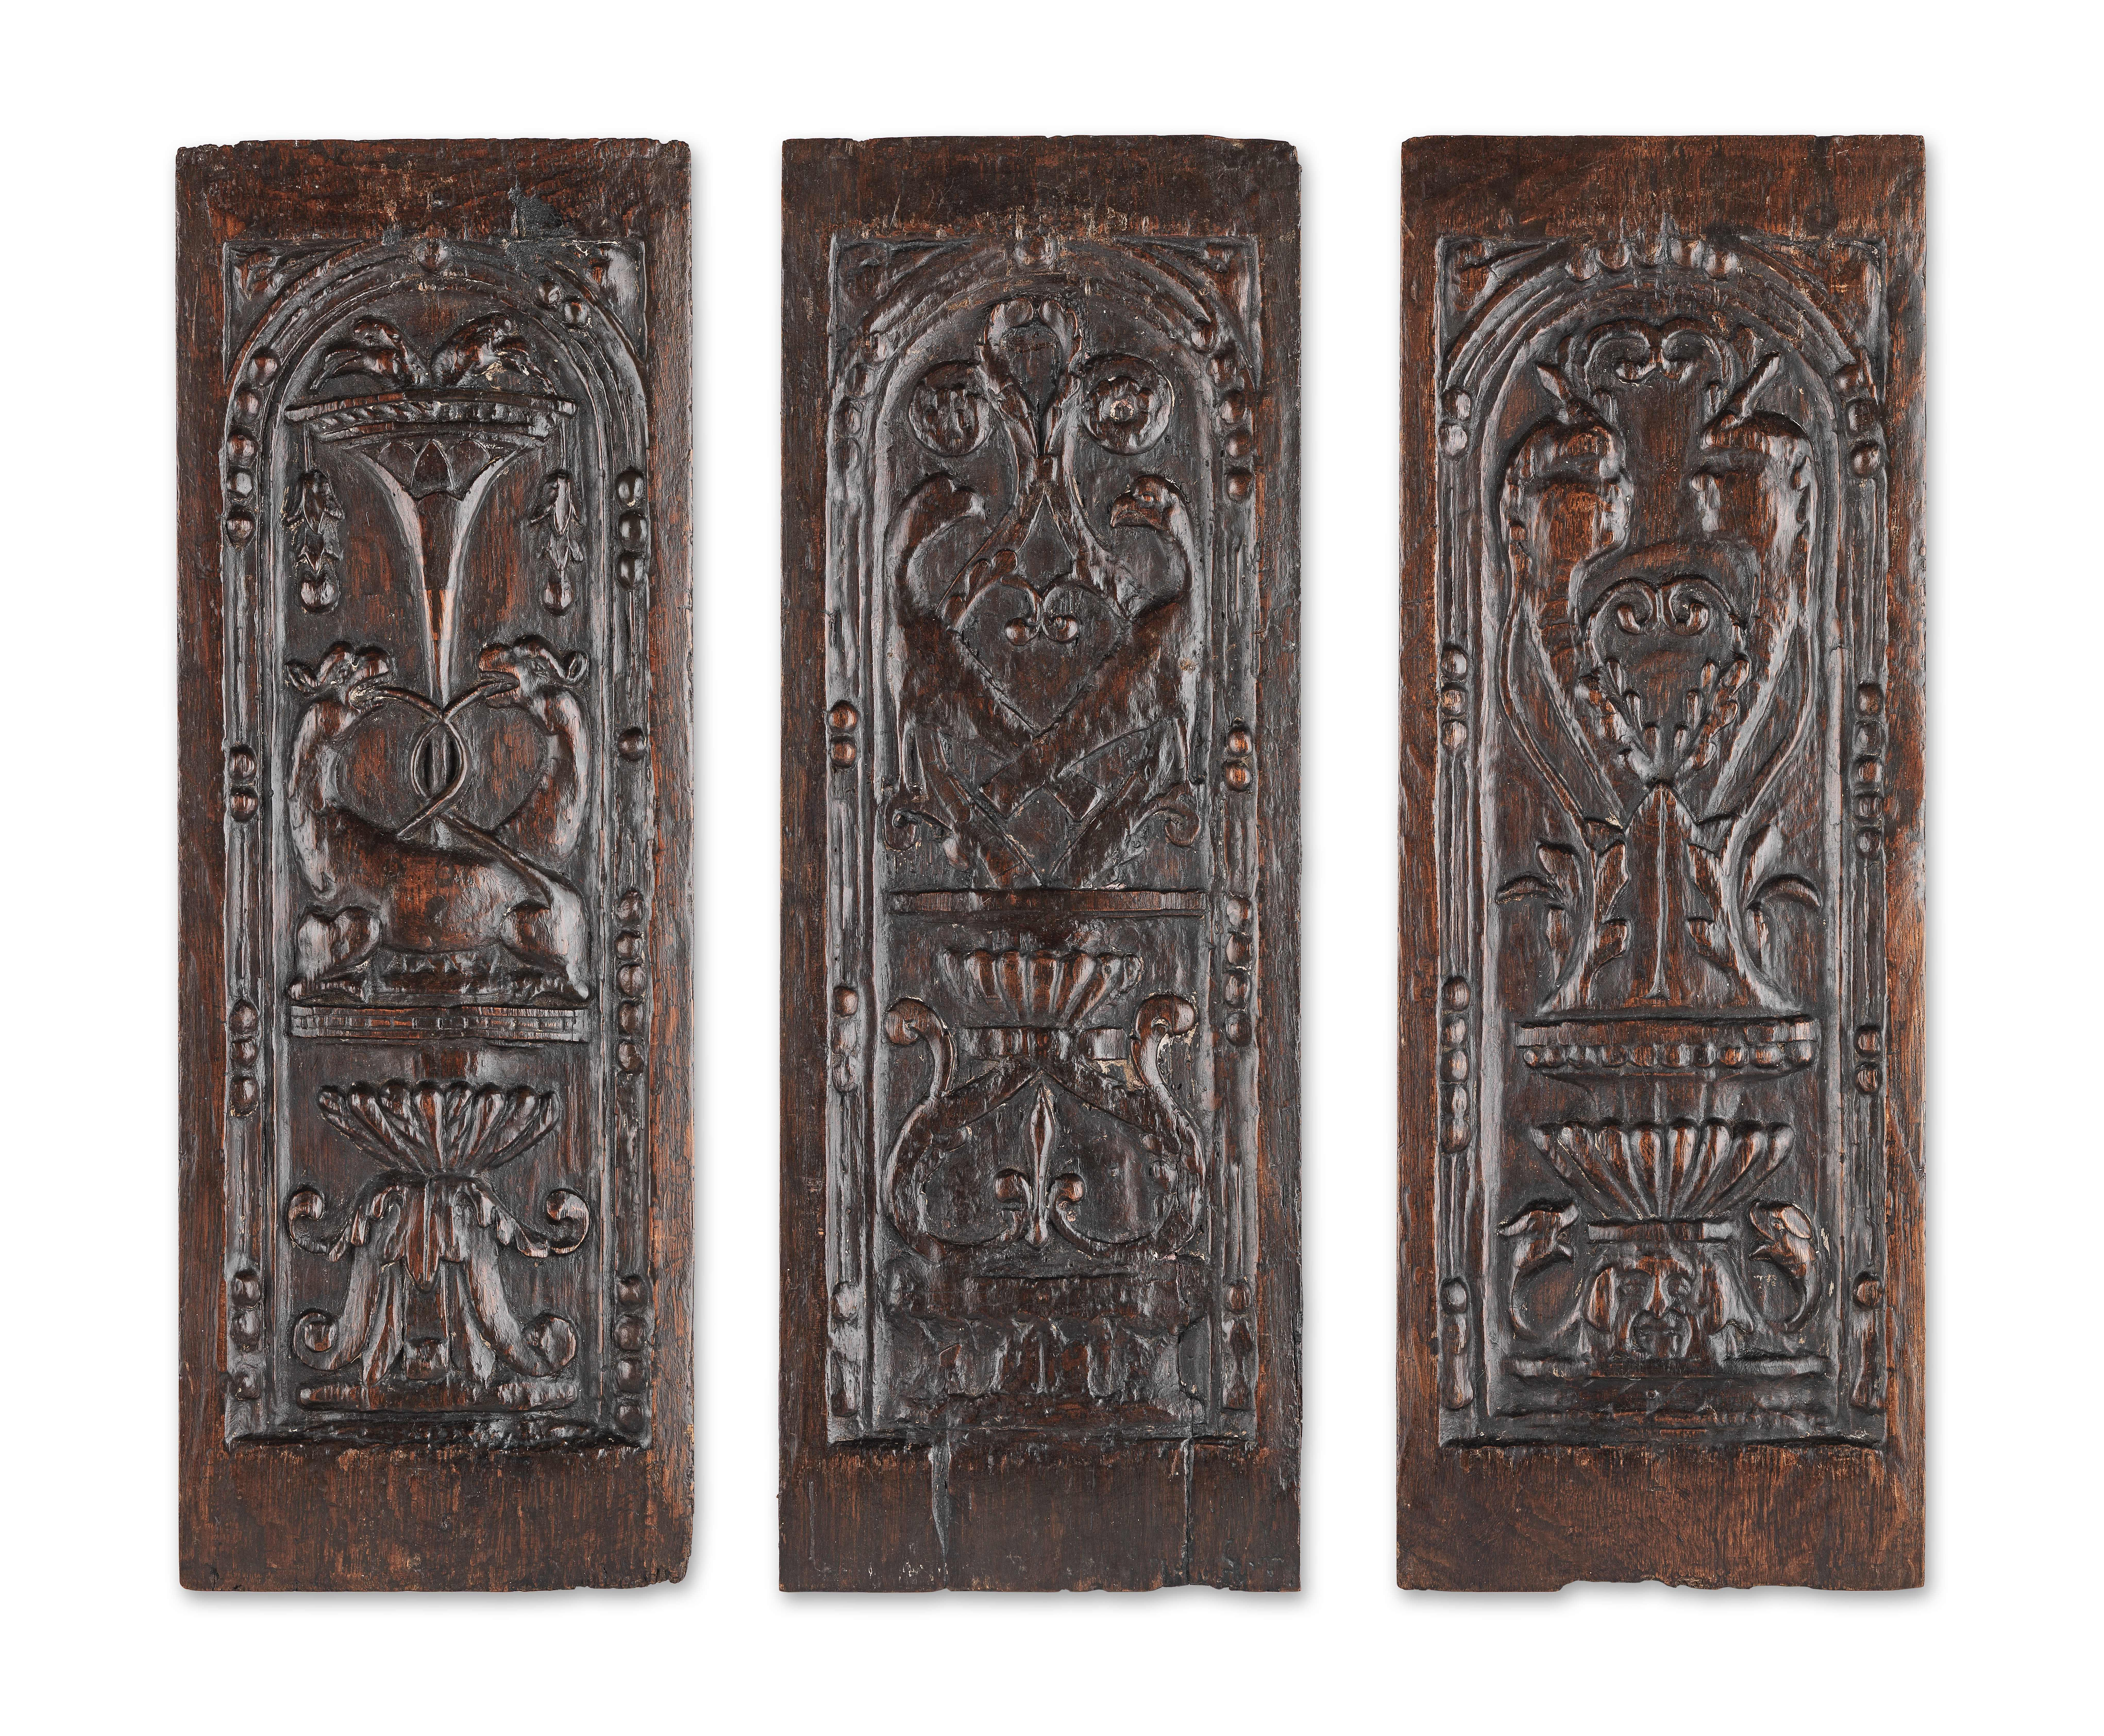 Lot 222 - Three mid-16th century carved oak panels, French, circa 1540 (3)